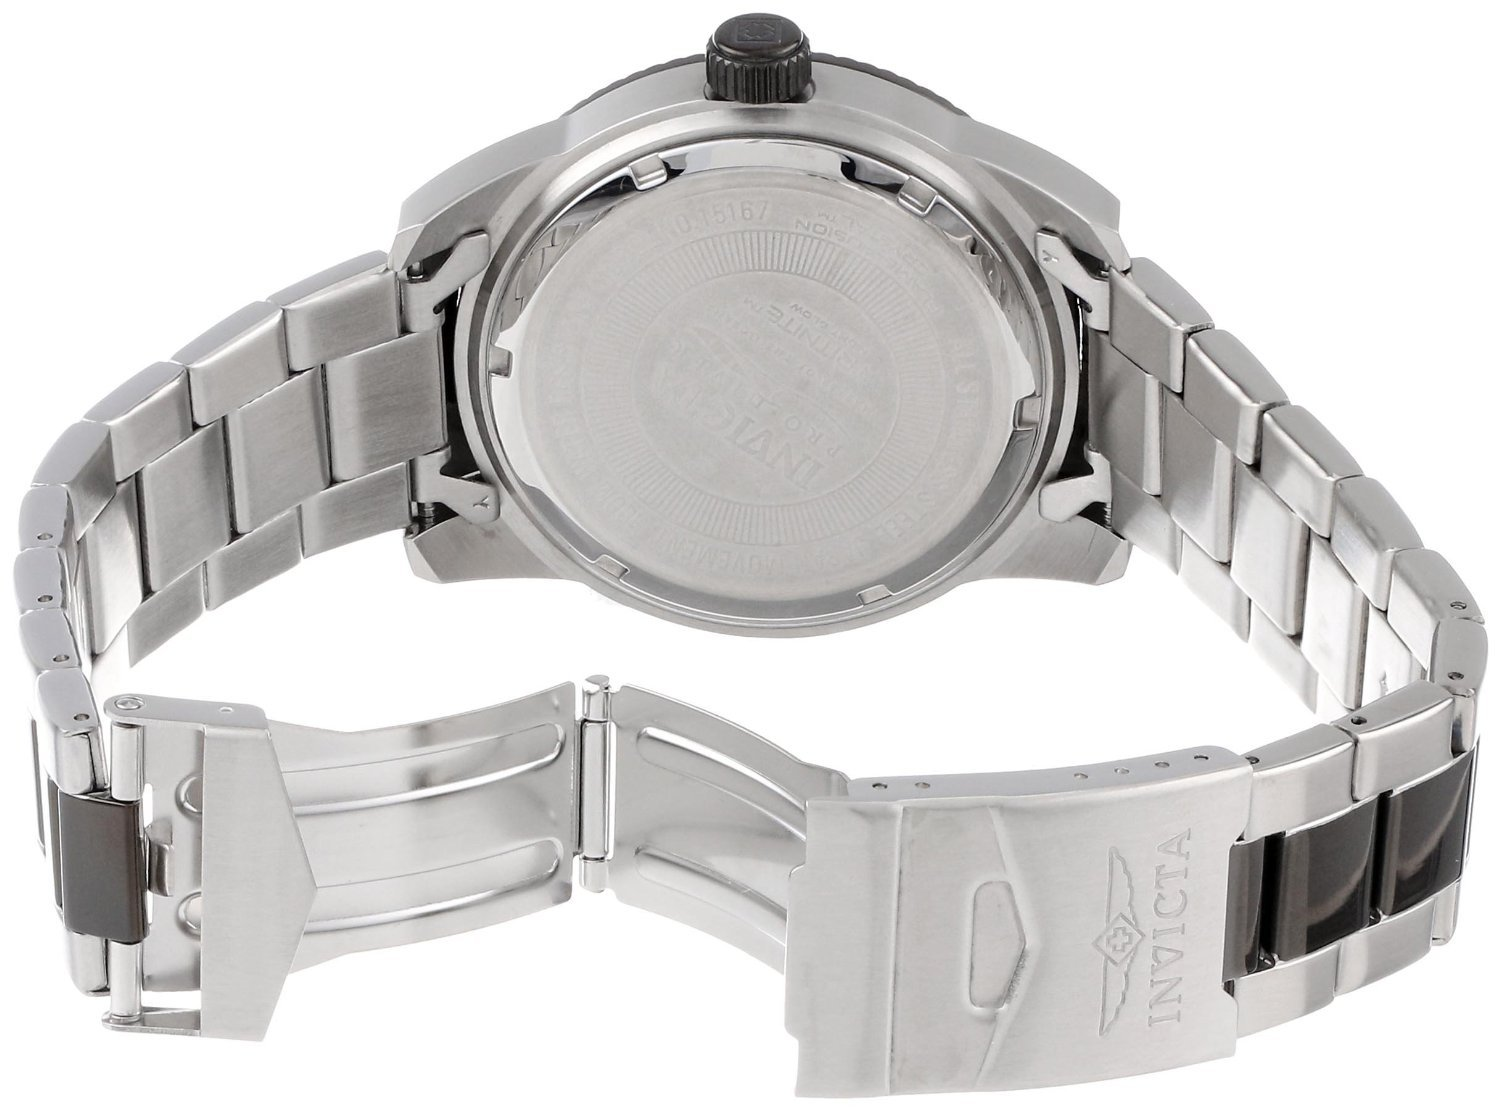 Amazon.com: RELOJ para HOMBRE INVICTA 15167 PRO DIVER SILVER DIAL TWO TONE STAINLESS STEEL: Health & Personal Care